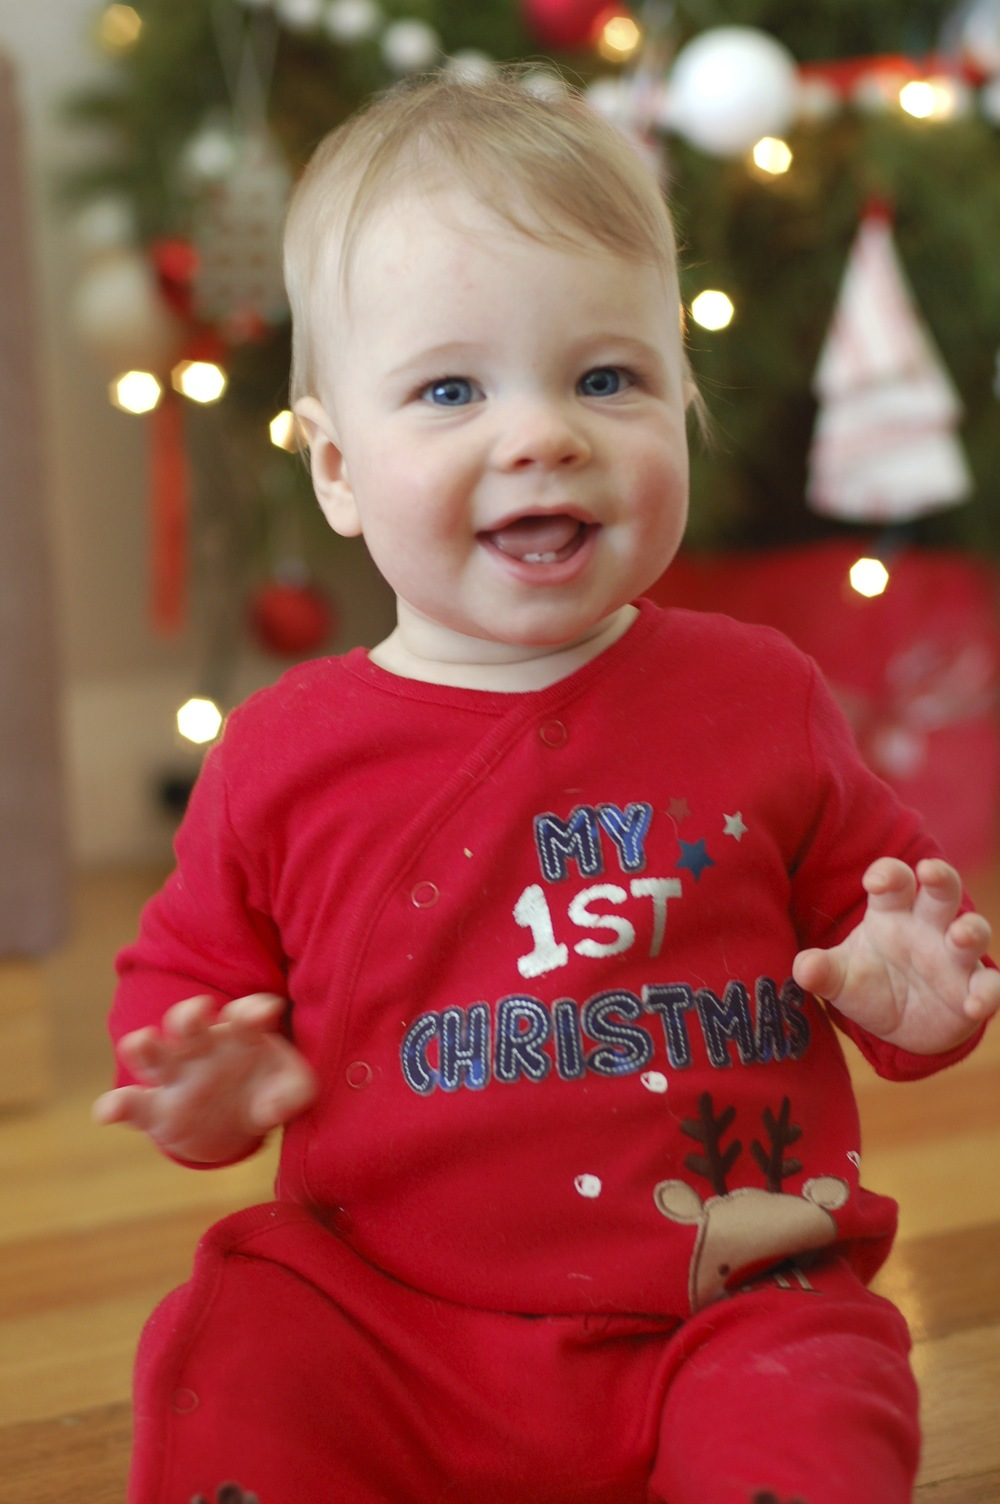 Loving his first Christmas!